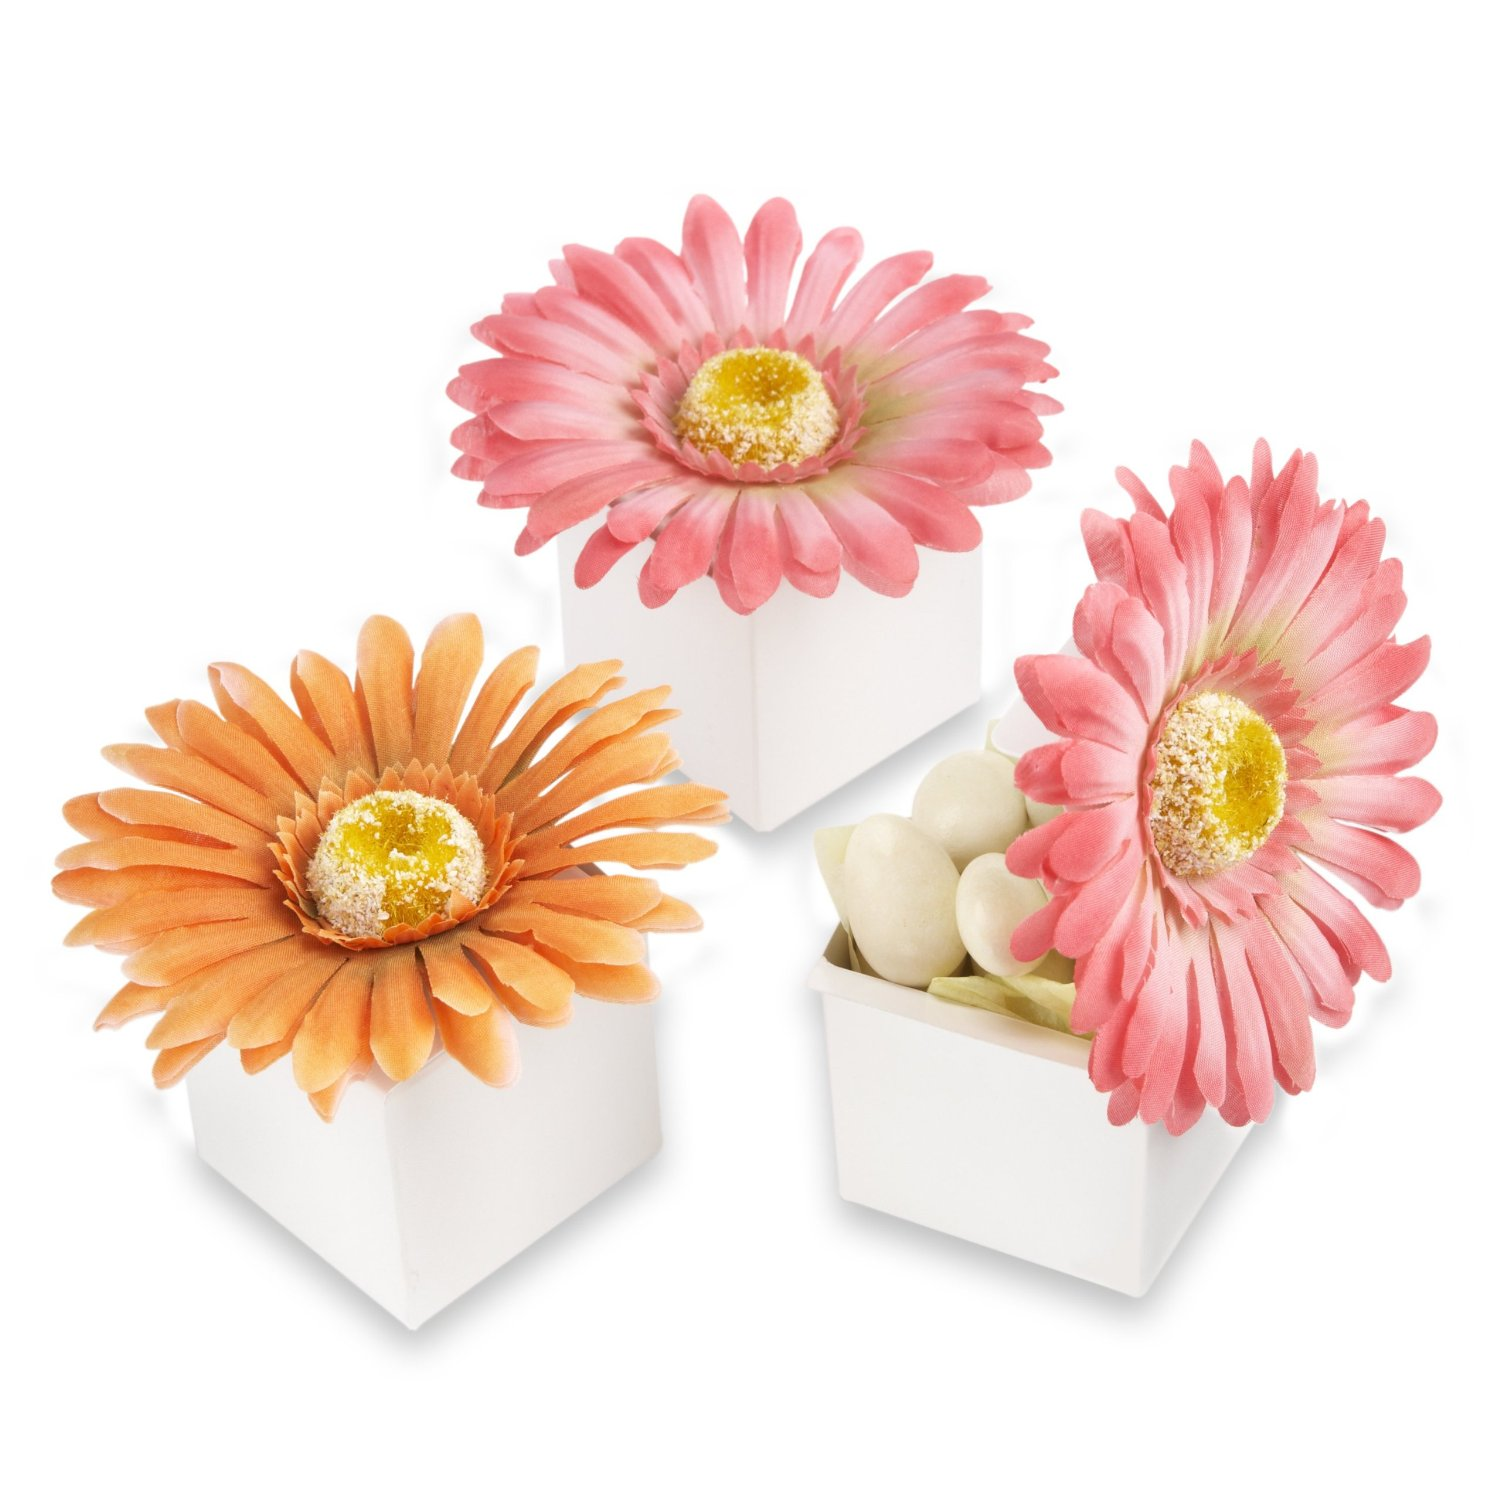 Cheap Daisy Hot Pink, find Daisy Hot Pink deals on line at Alibaba.com